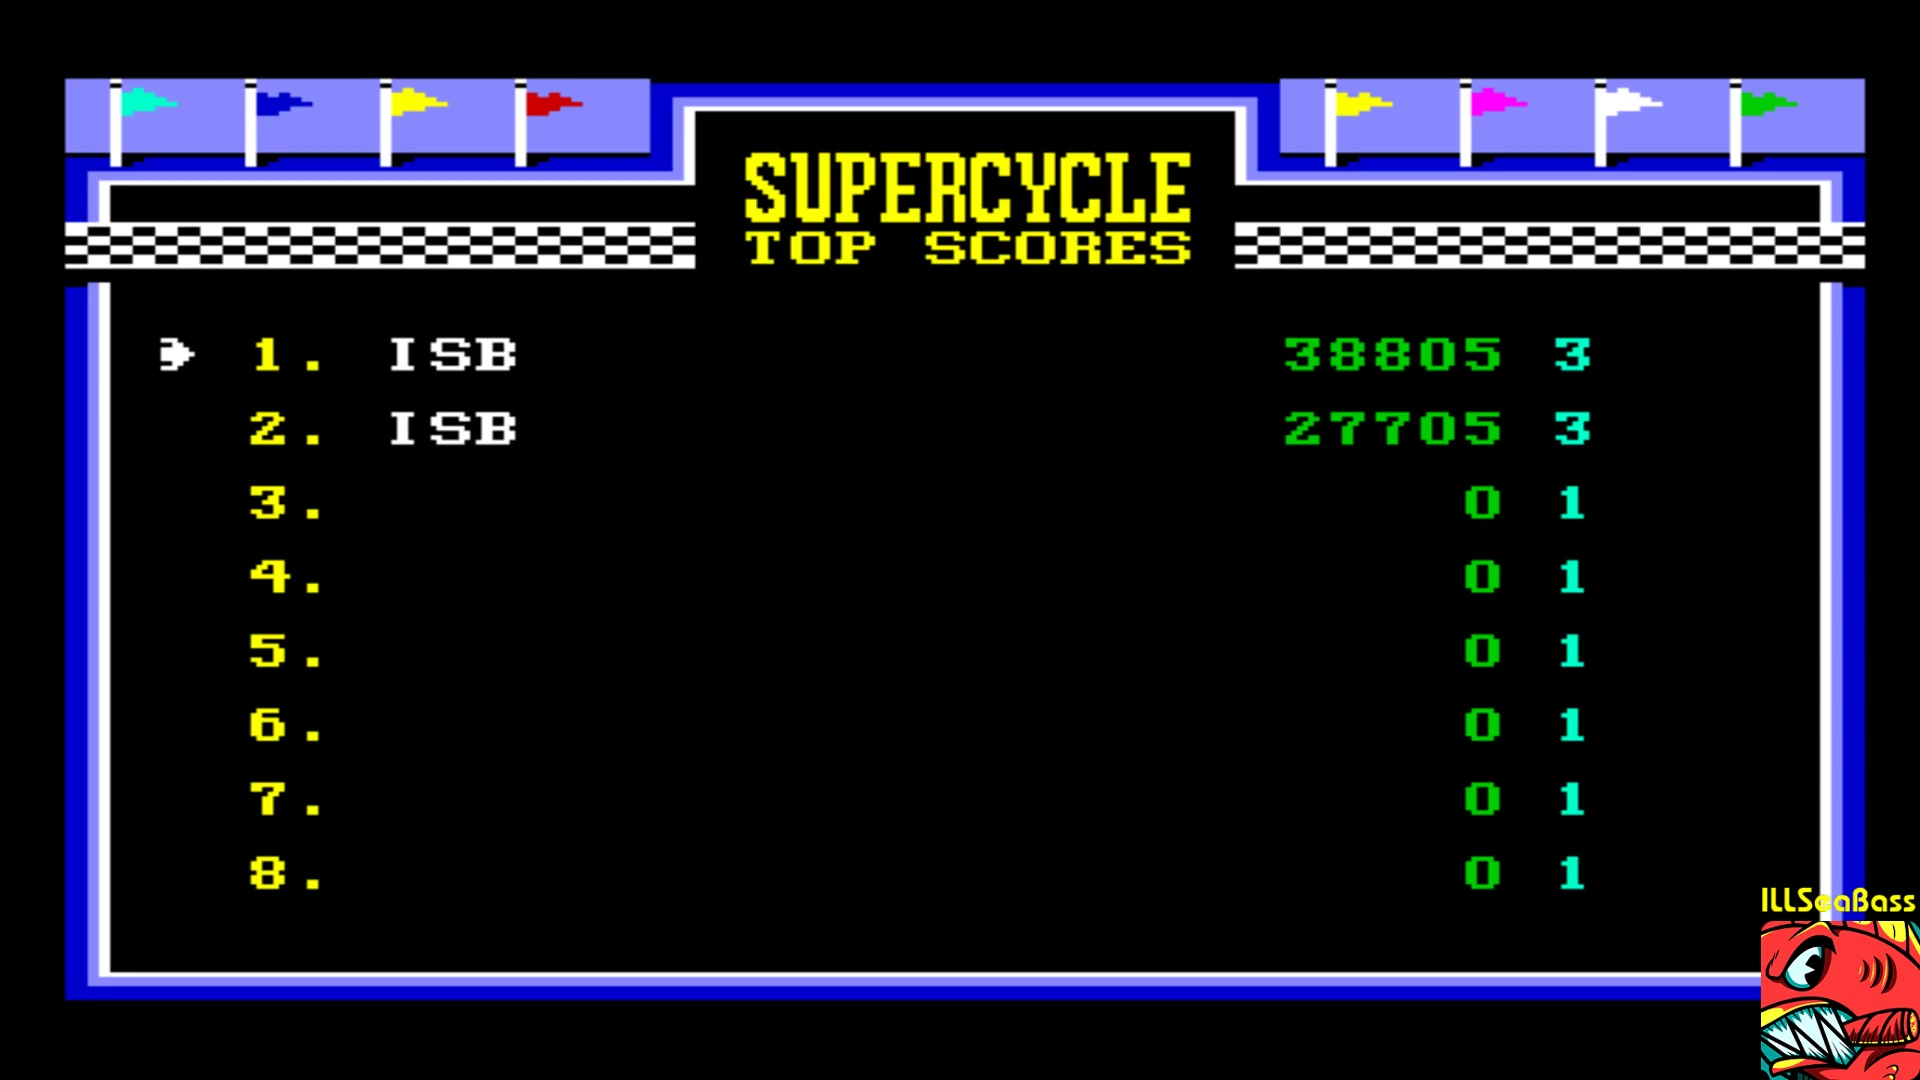 ILLSeaBass: Super Cycle [Level 3 Start] (Commodore 64 Emulated) 38,805 points on 2018-02-01 20:45:26